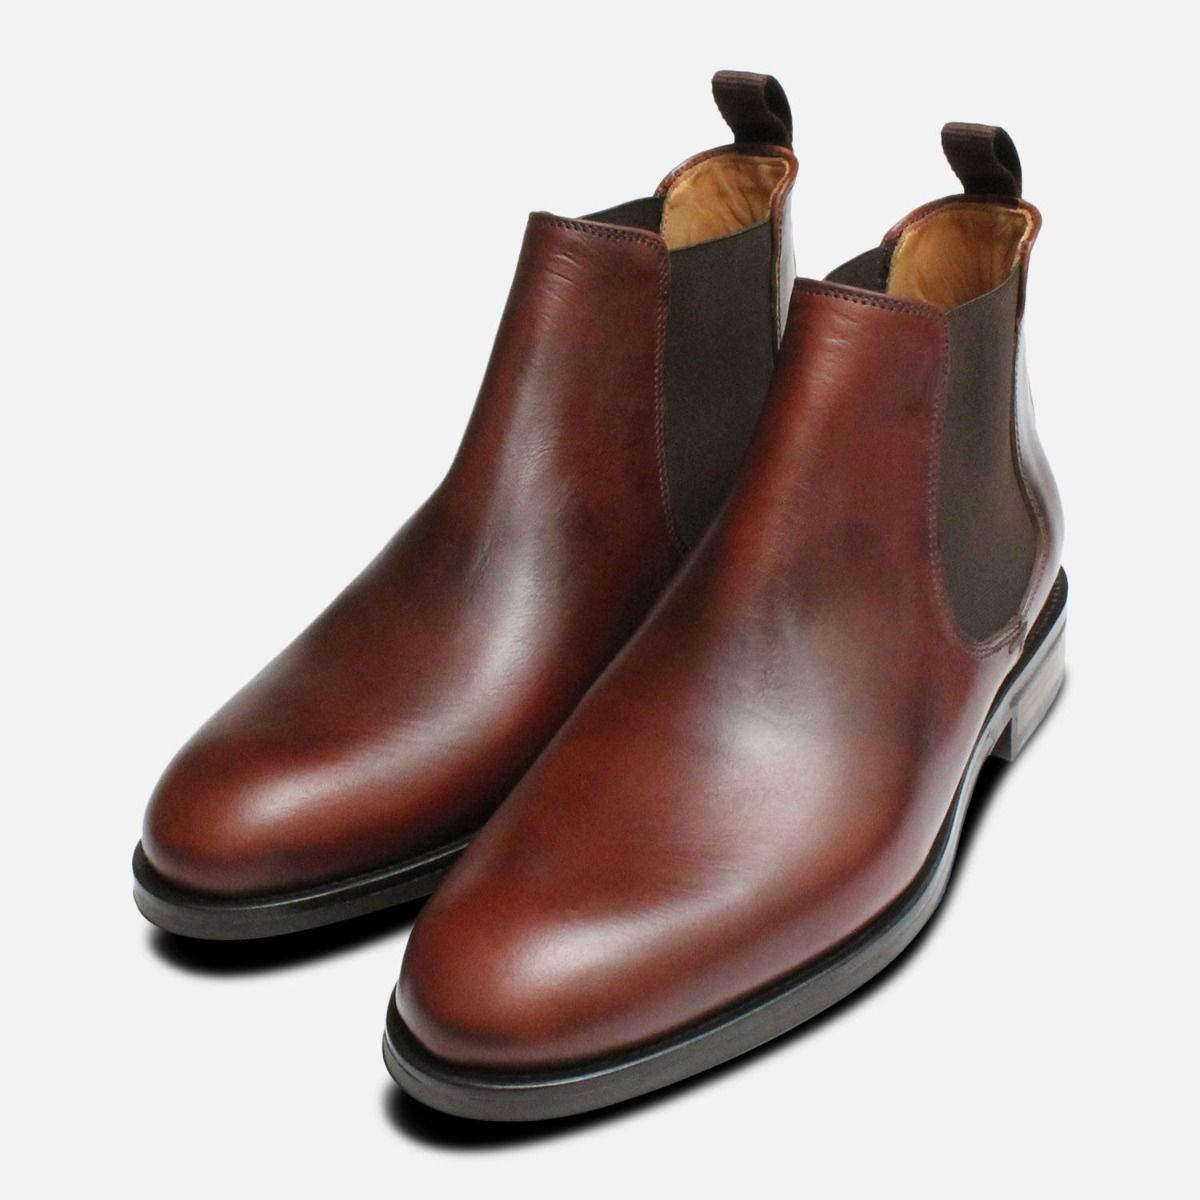 Mens Footwear in Tunbridge Wells at Gray & Co. - Chelsea Boot by John White